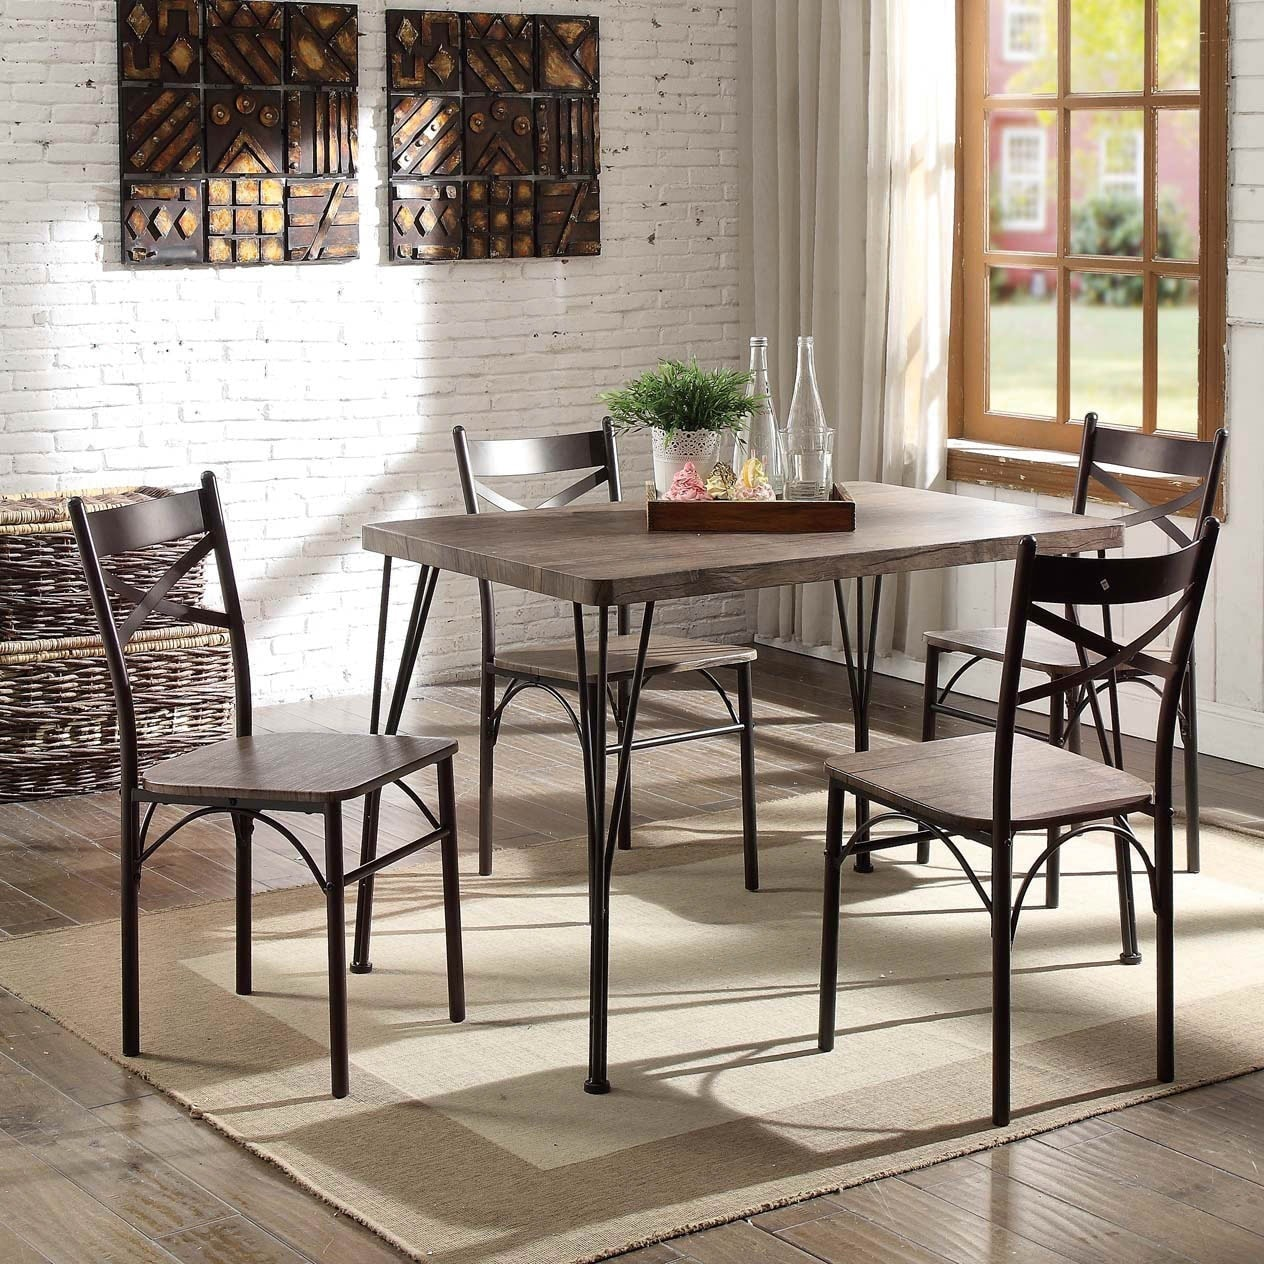 Shop Furniture of America Hathway Industrial 5 piece